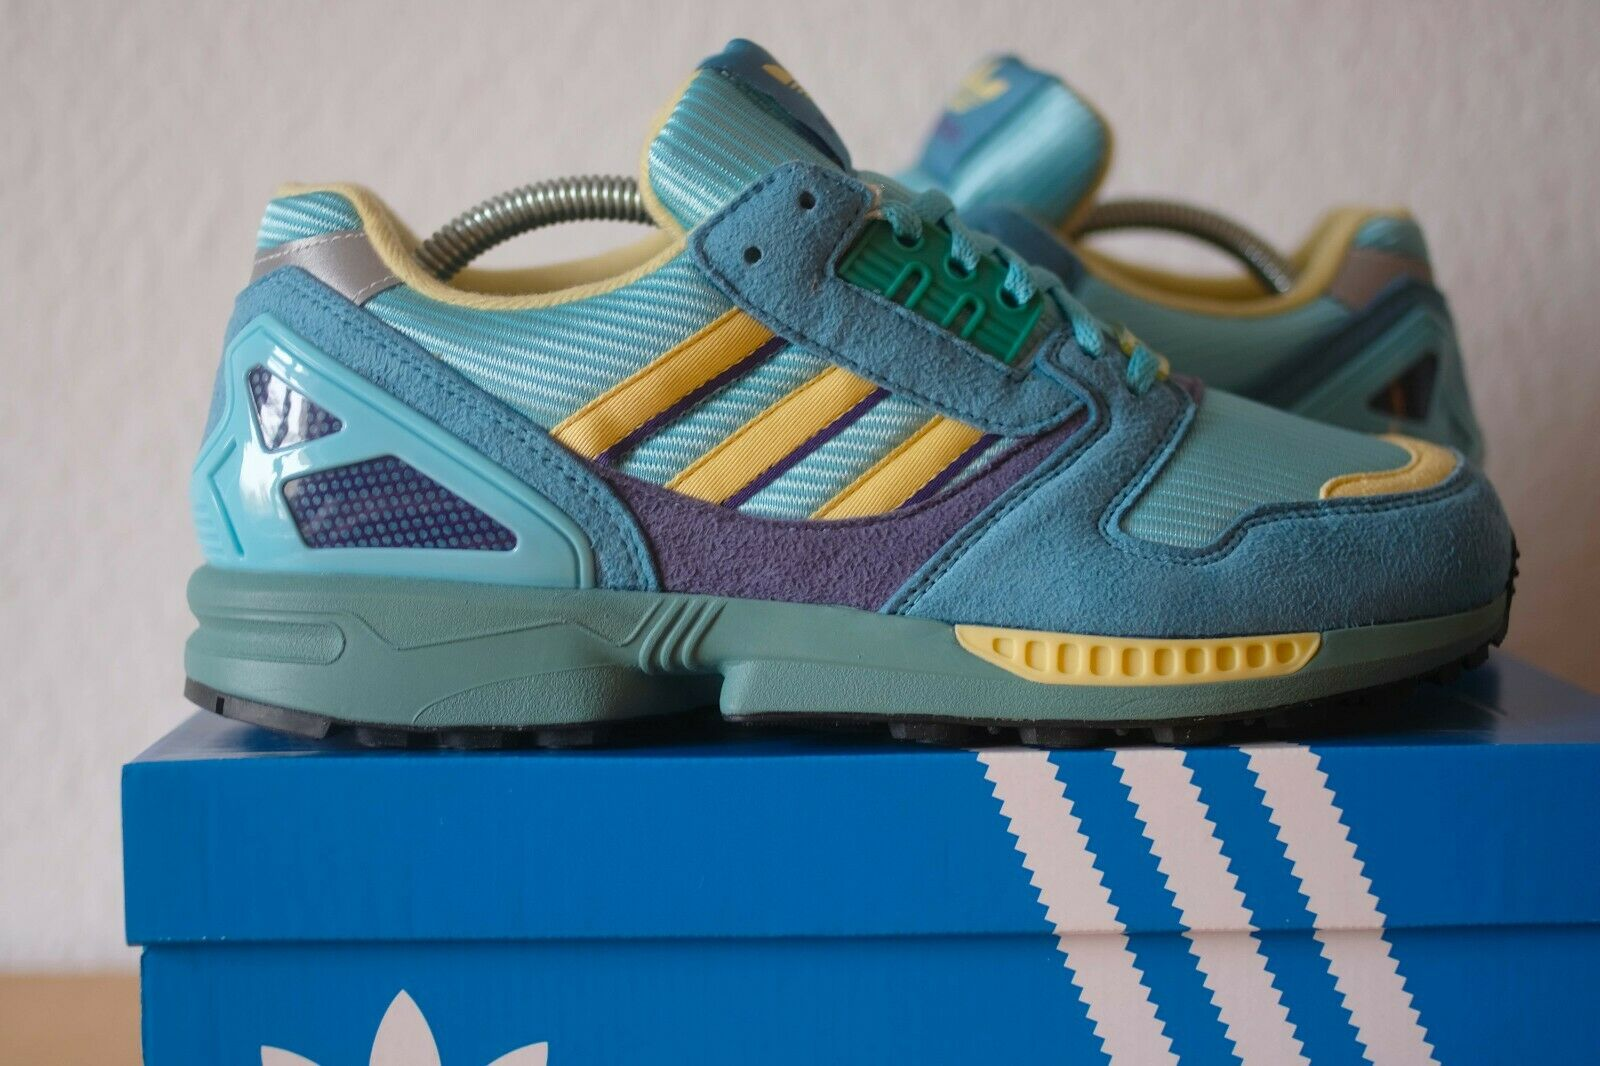 Adidas ZX 8000 Consortium EE4754 light aqua 43 13 9 9.5 9000 5000 Torsion